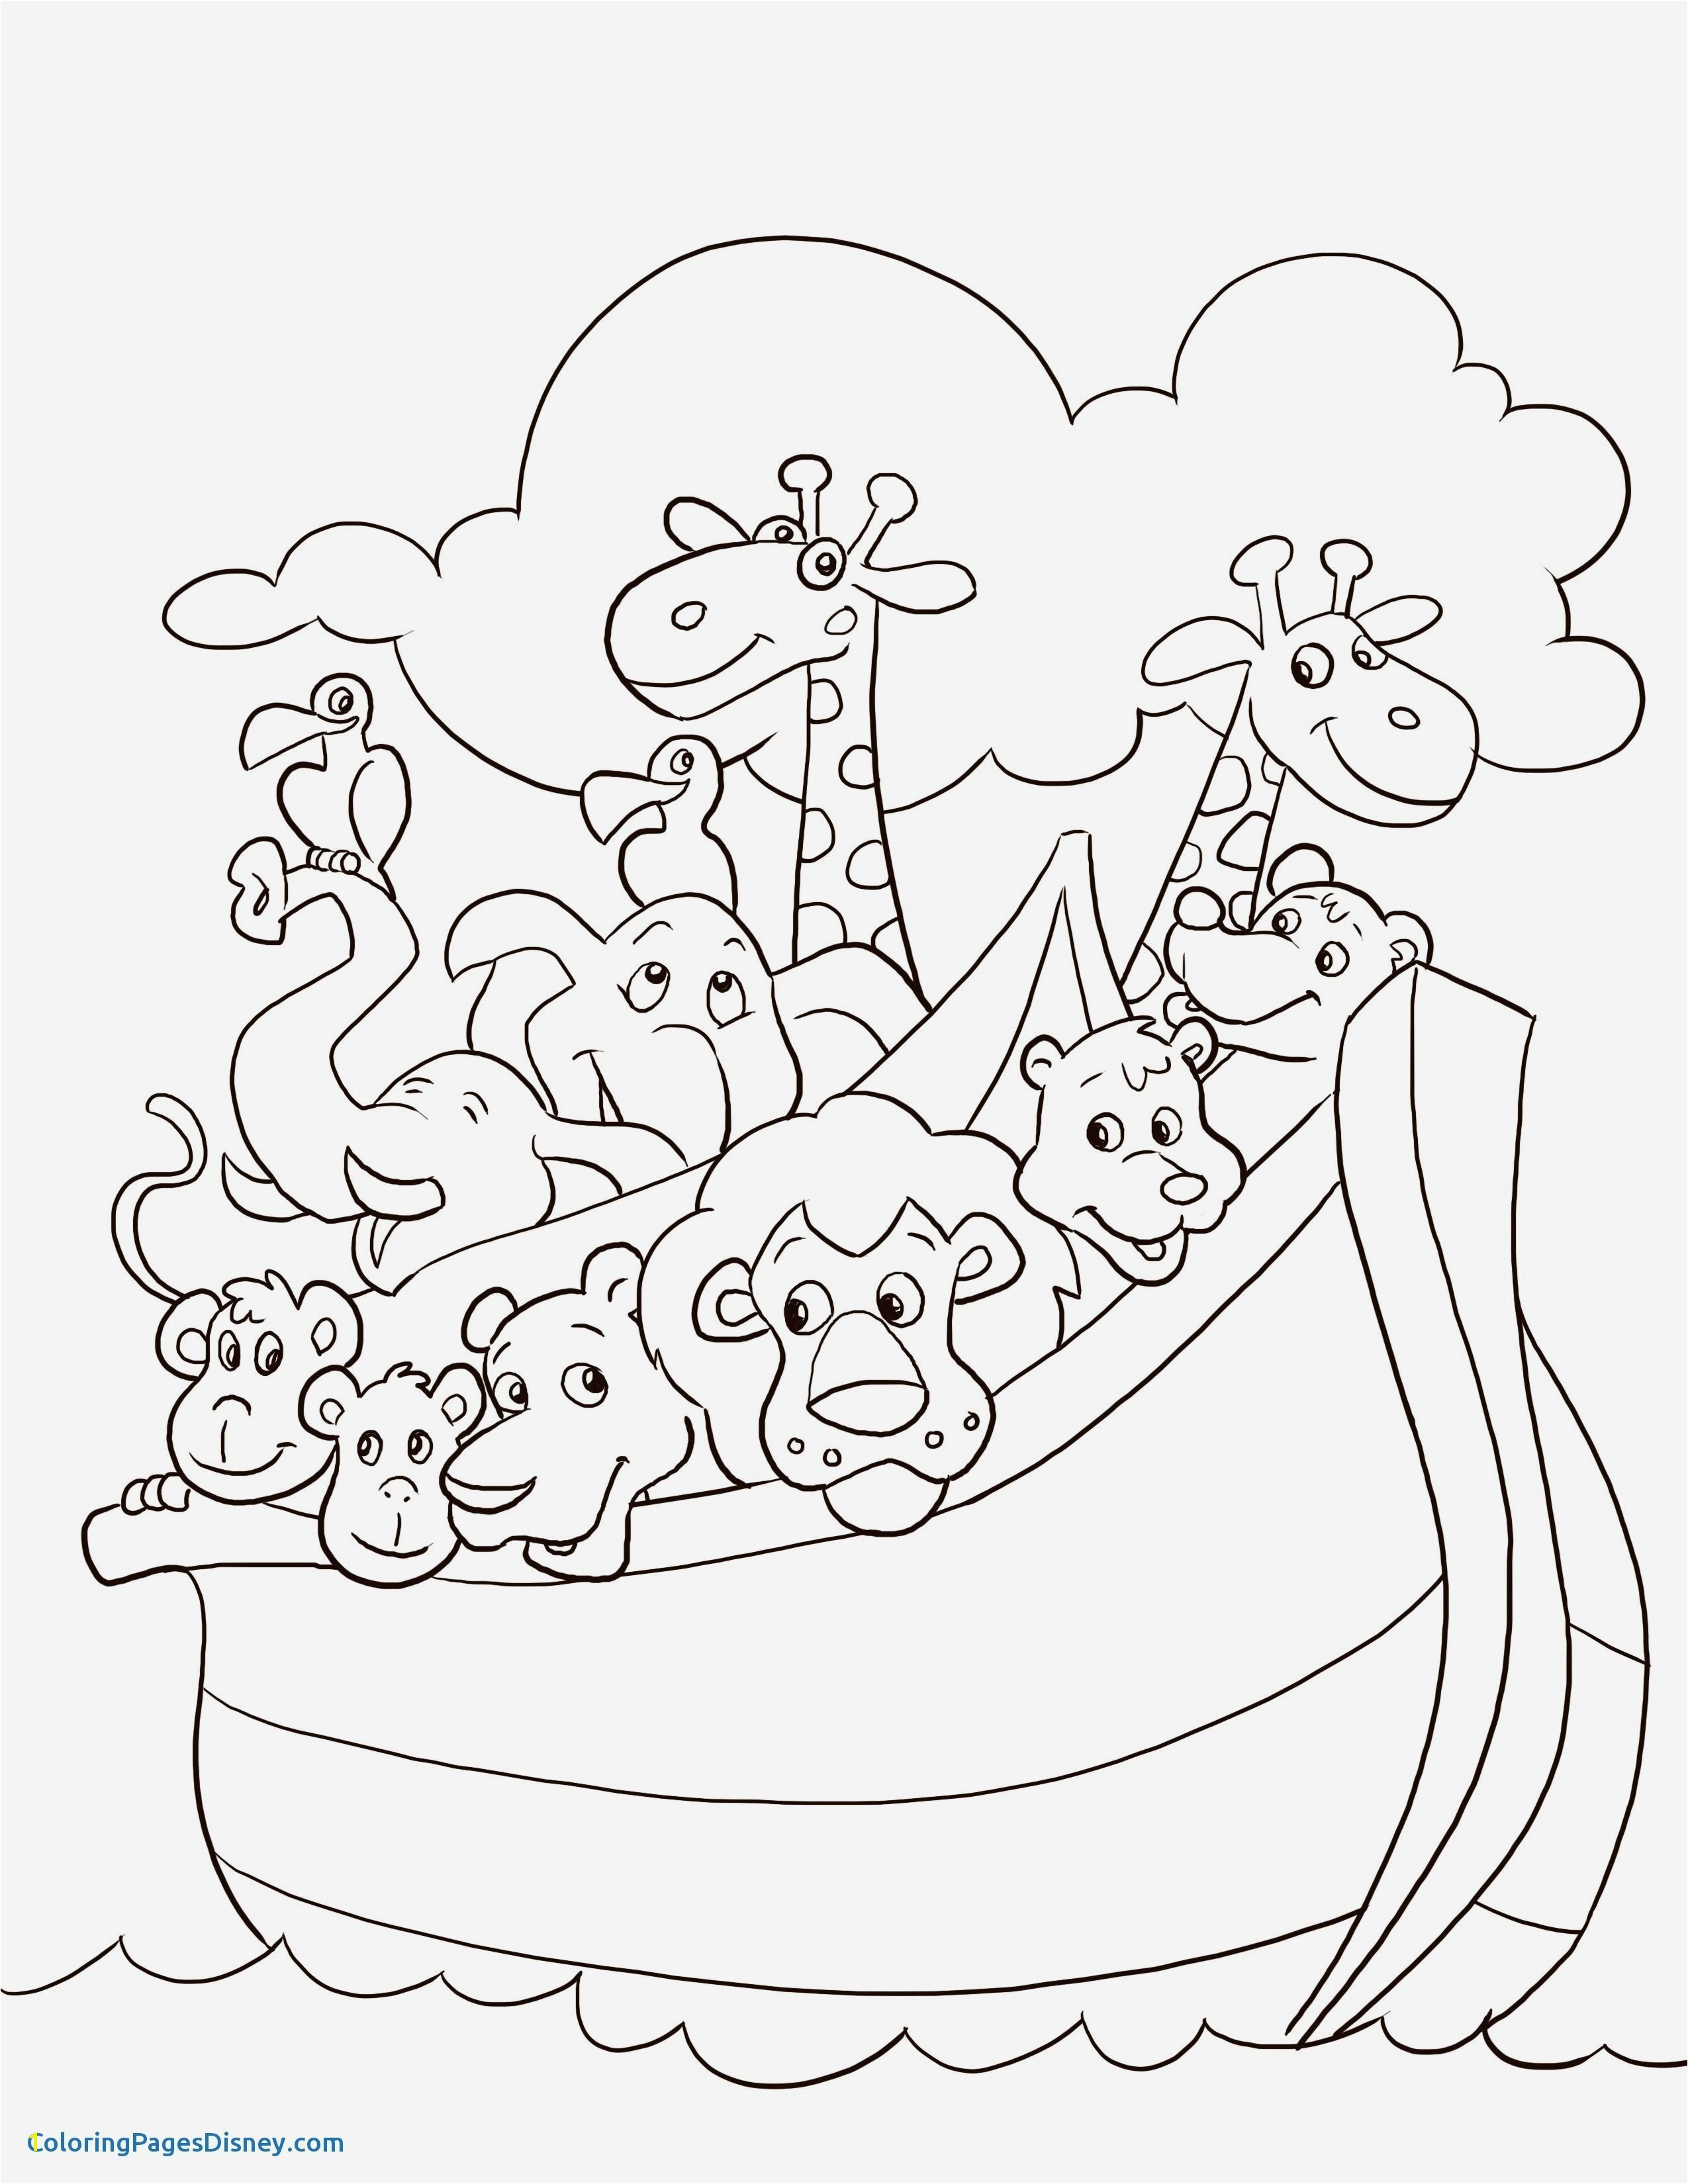 Samson Coloring Pages For Kids Free Noah Ark Coloring Pages Heathermarxgallery